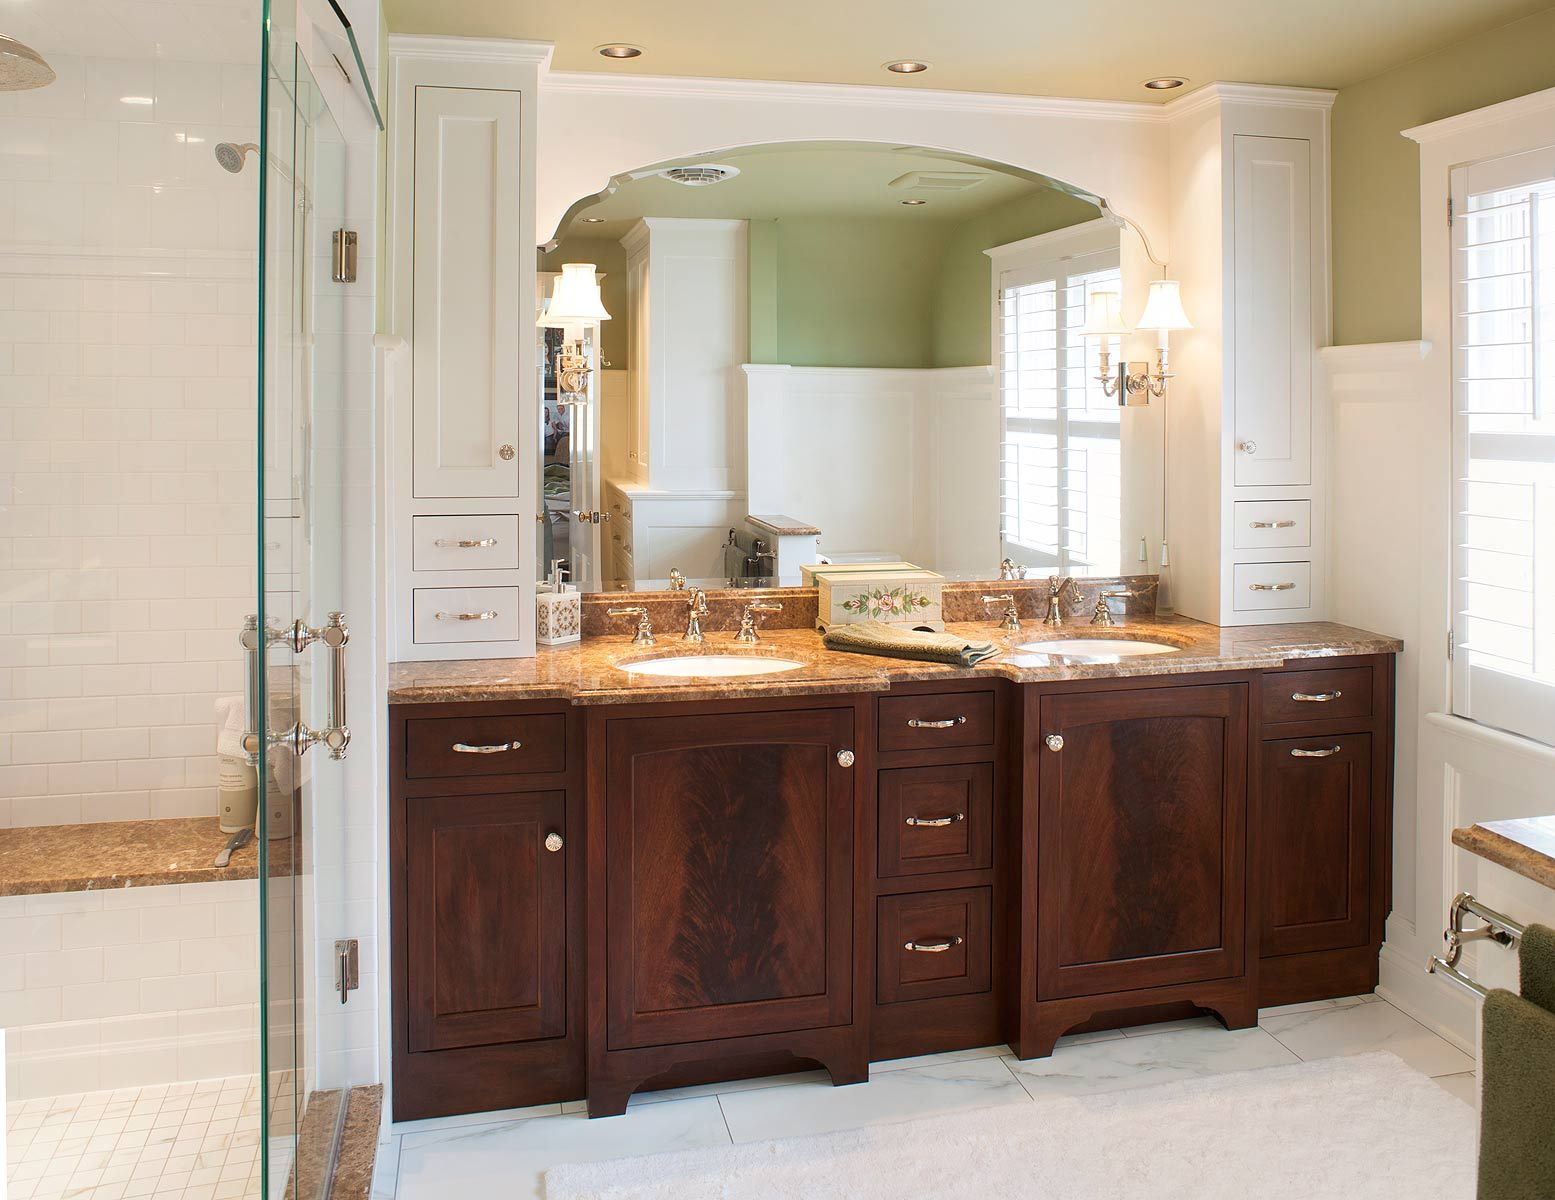 1000 images about bathrooms on pinterest mid continent bath vanities and mullets brown bathroom furniture